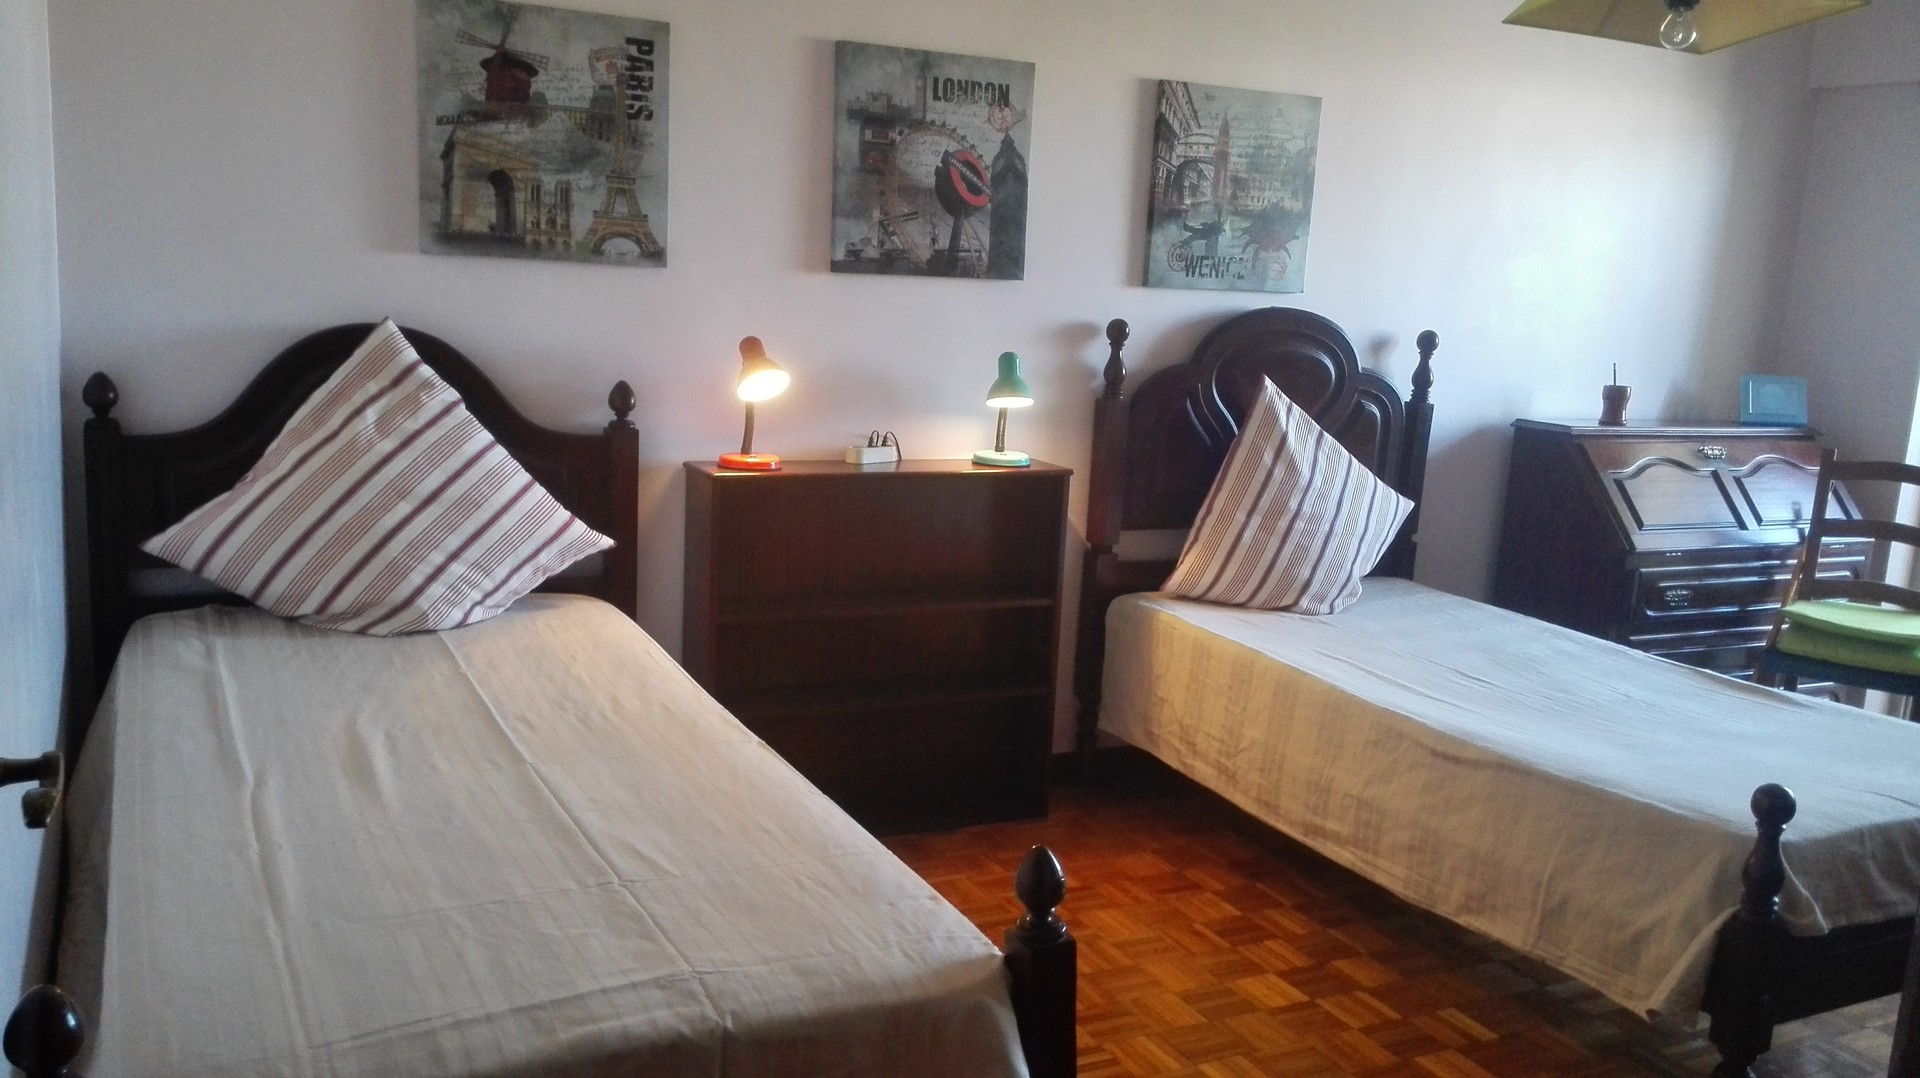 room-with-2-beds-in-lisbon-only-girls-academicals-students-for-2-friends-apartment-074d665372c590b06b4fa4bf3cce34f6